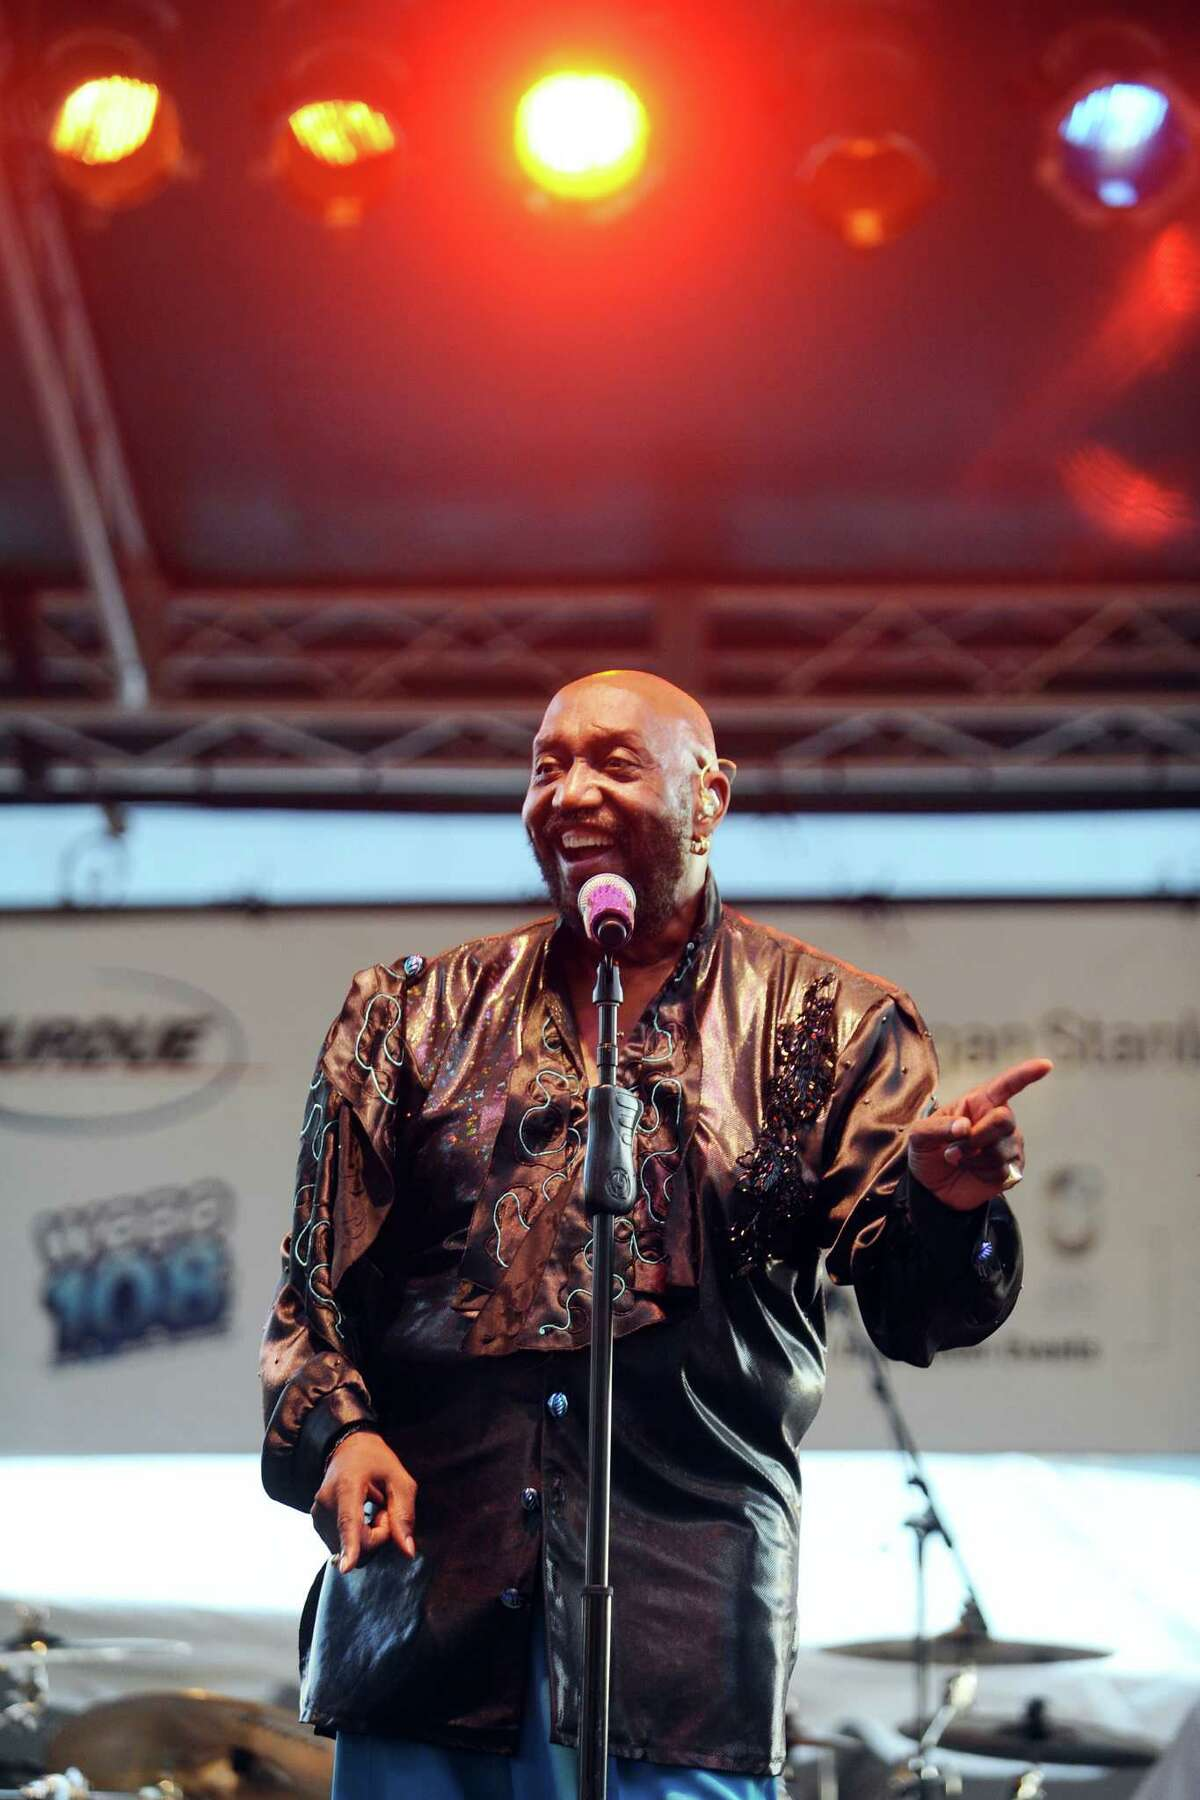 Otis Williams, a founding member of The Temptations, performs with the group at Stamford's Wednesday Nite Live concert at Columbus Park on Wednesday, July 6, 2016.